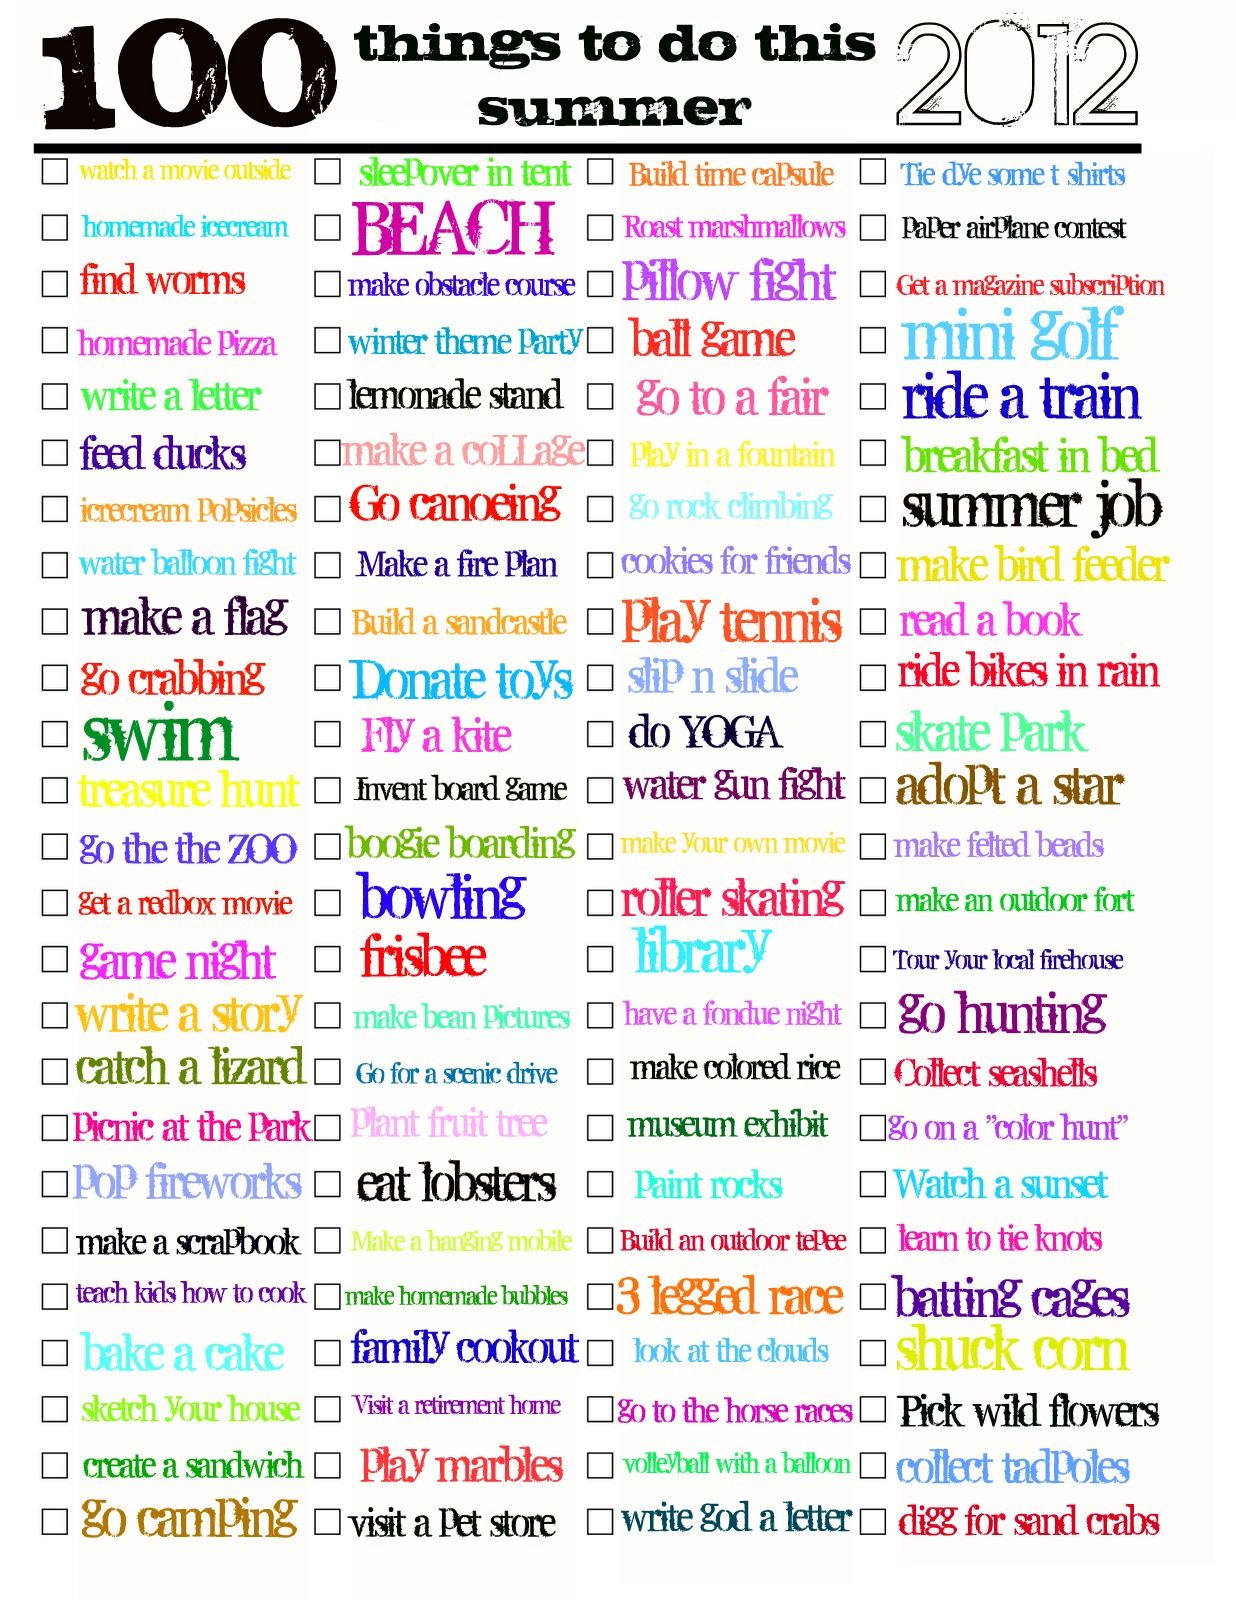 summer to do list - this way when people ask me what I did this summer, I  can just show them the list!